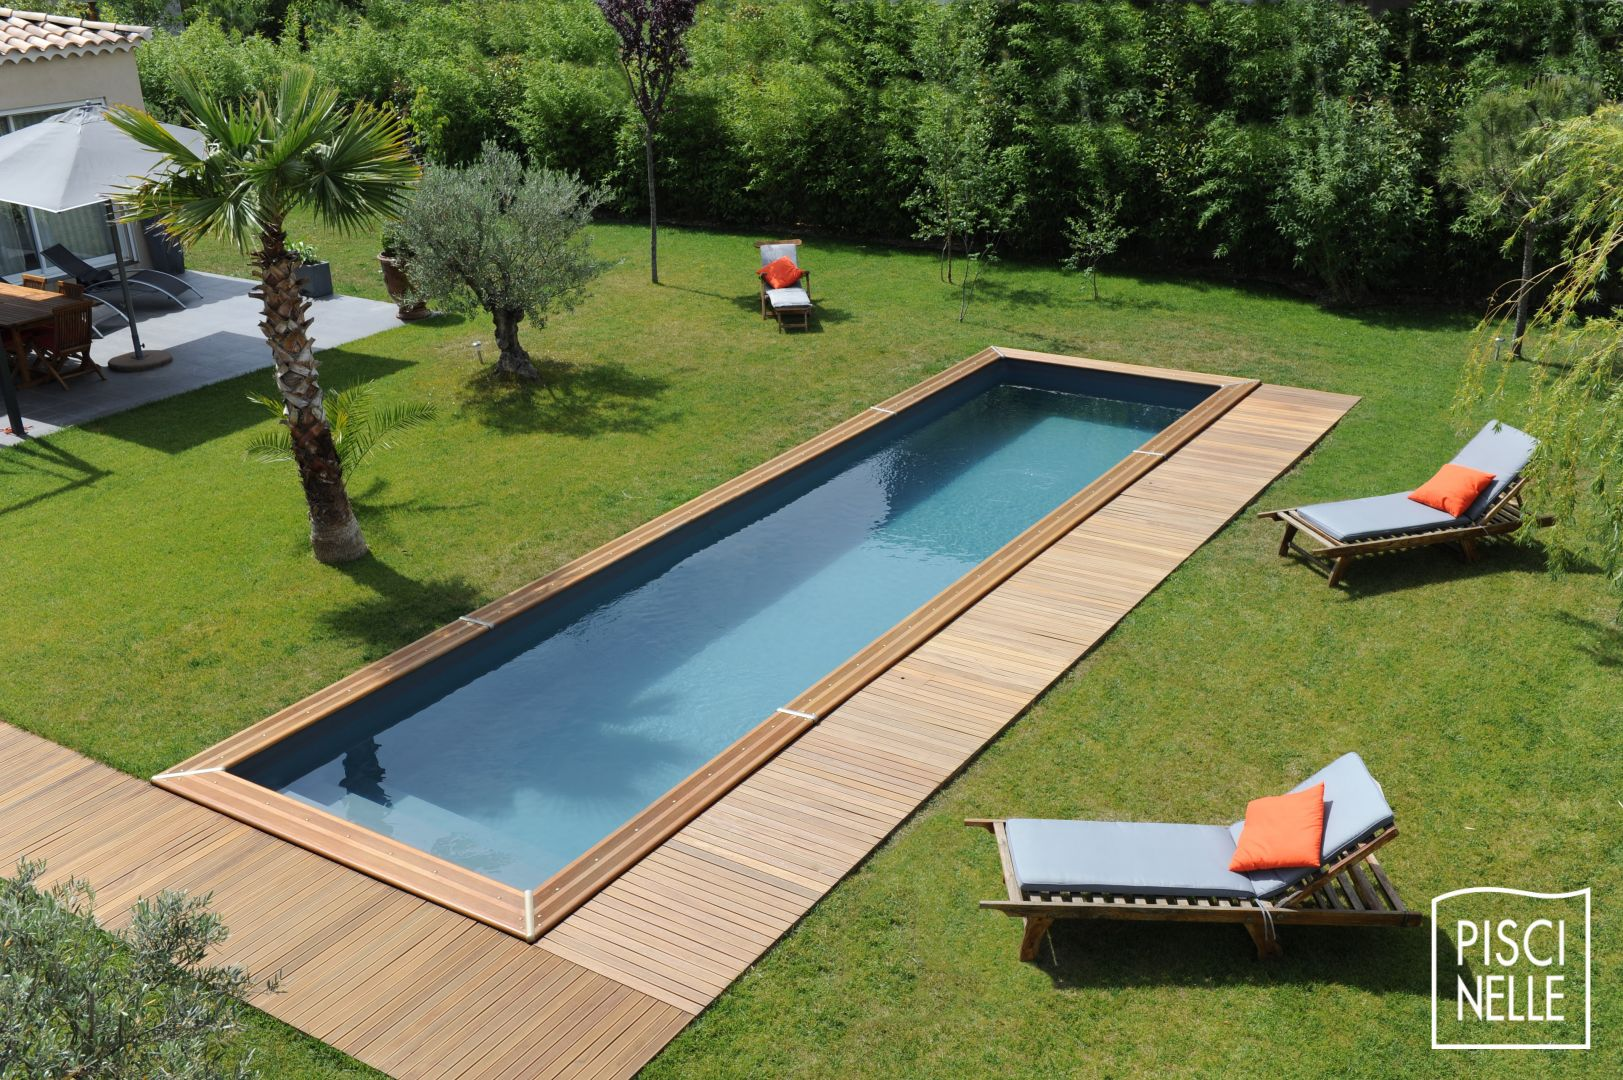 Piscine enterr e les piscines enterr es en kit par for Piscine en kit enterree